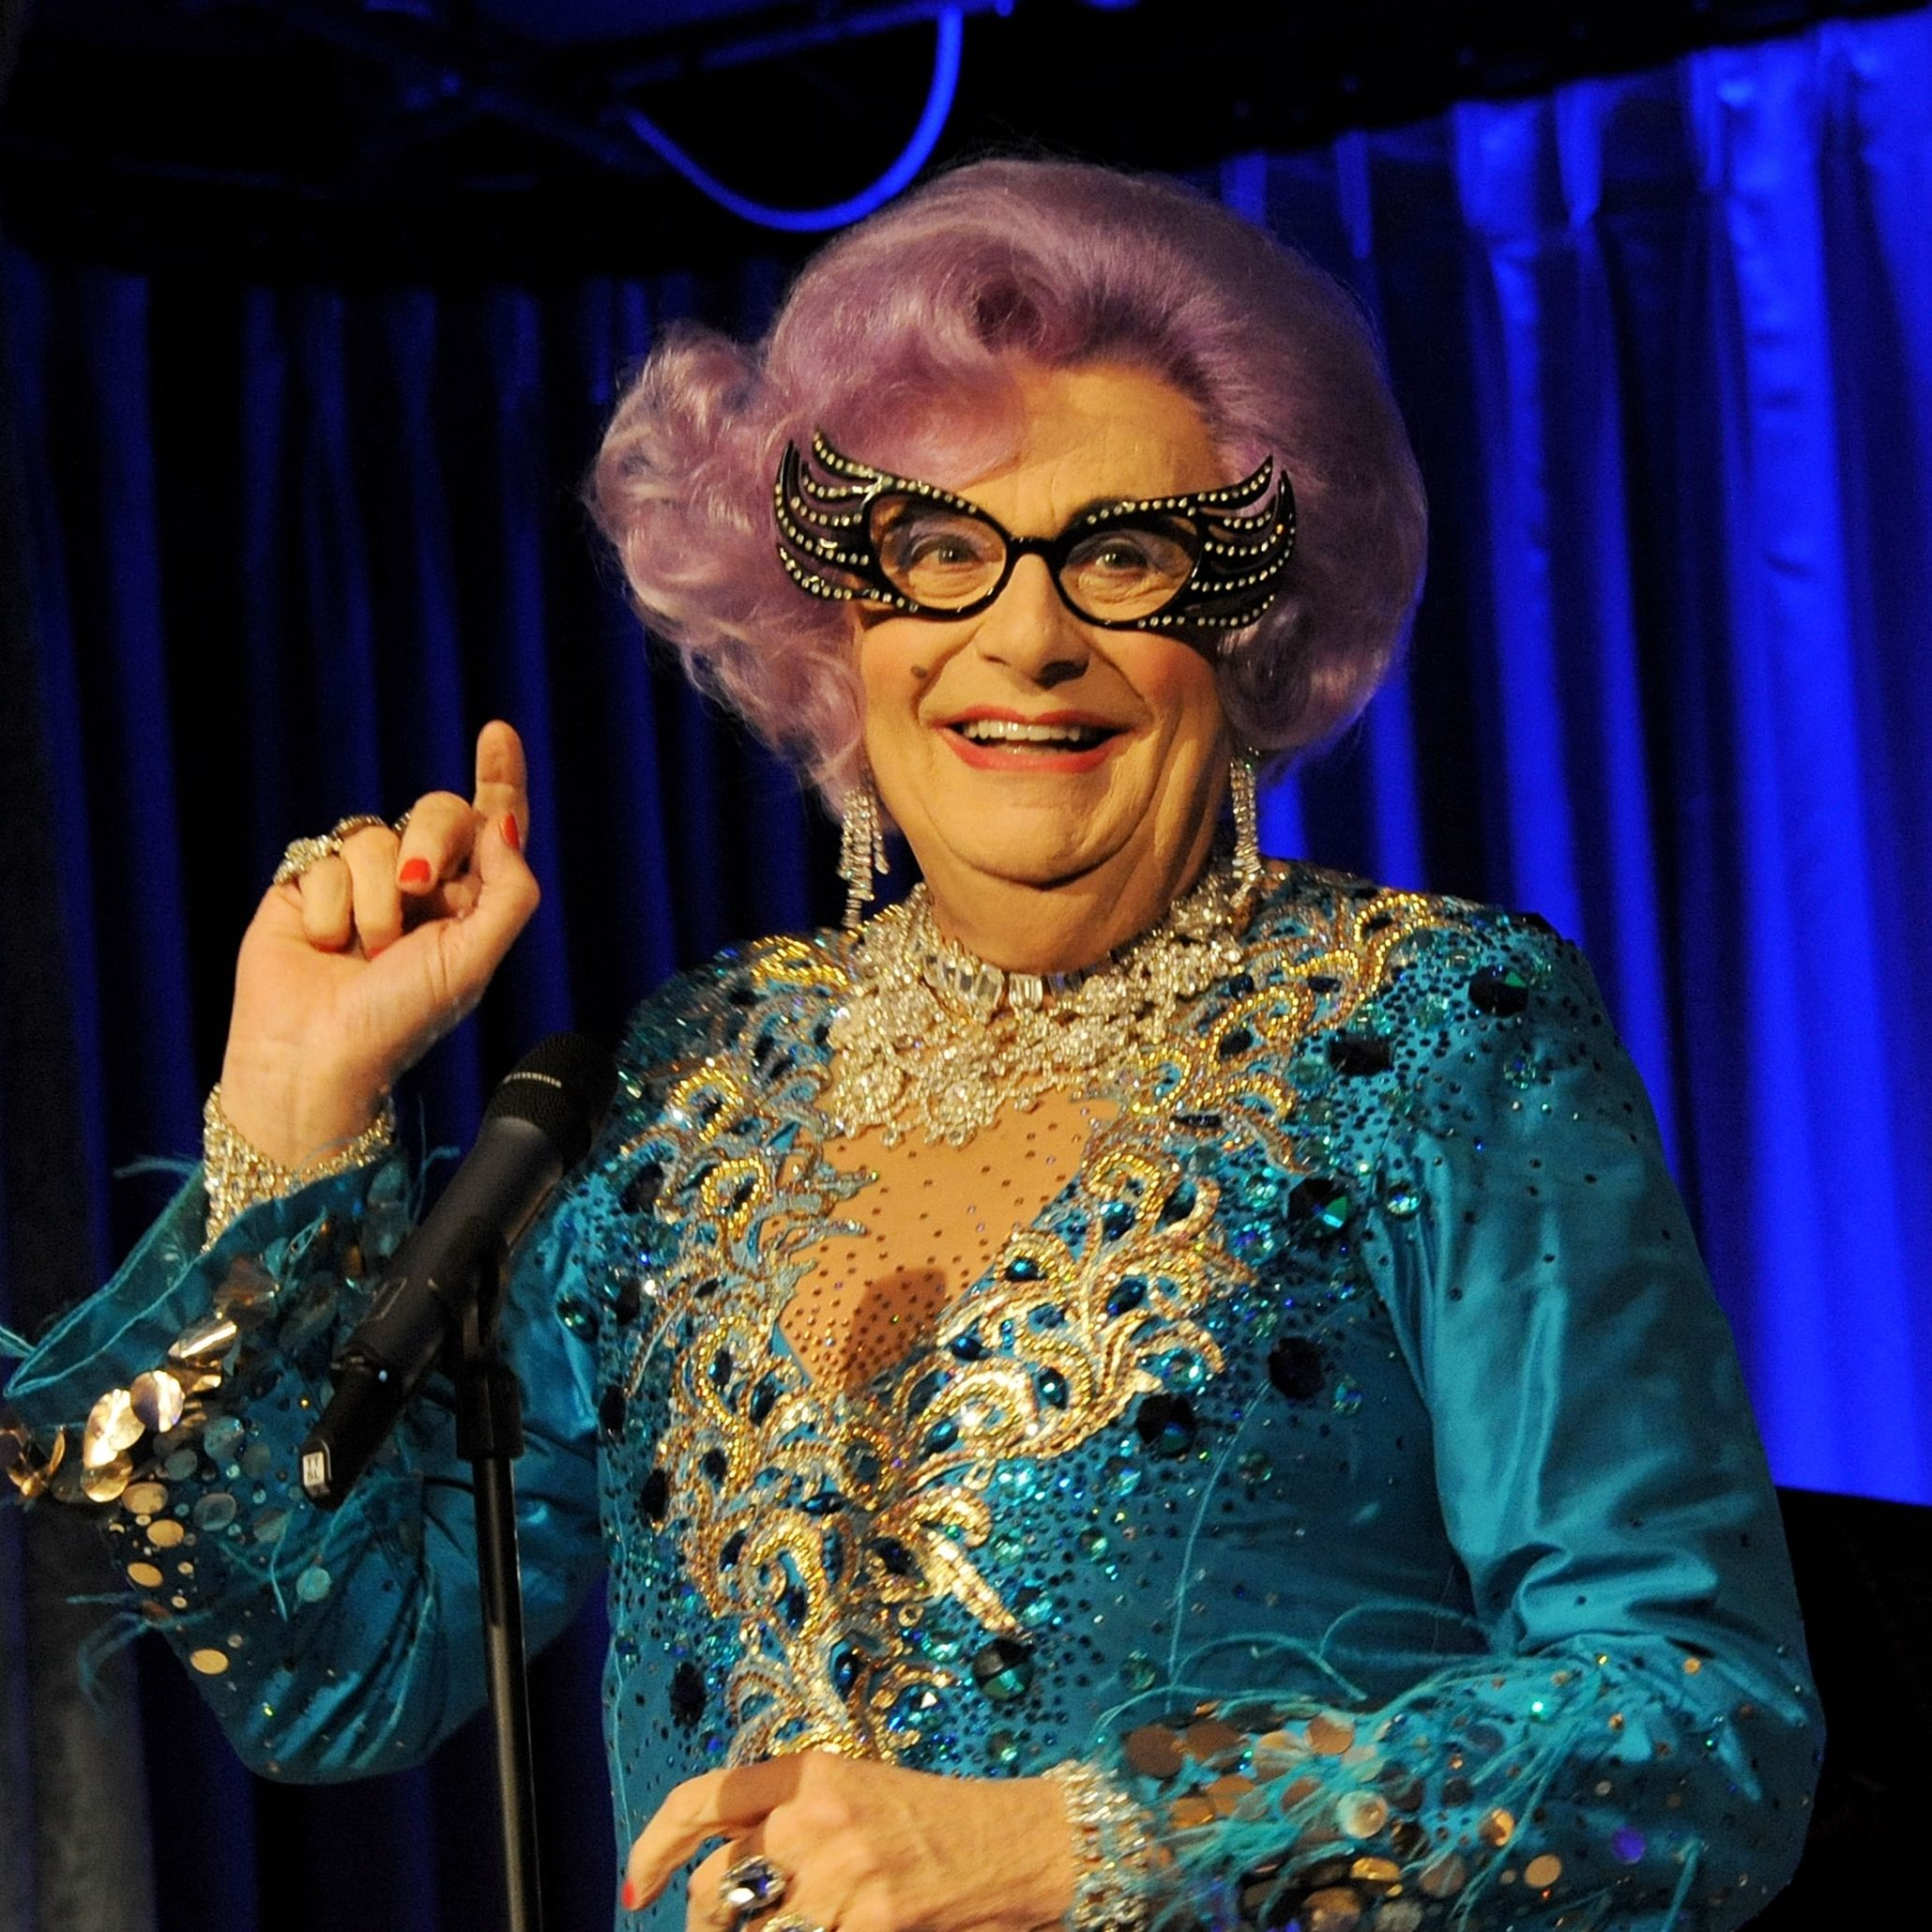 Dame Edna Everage will return to BBC One with an all-new one-off special